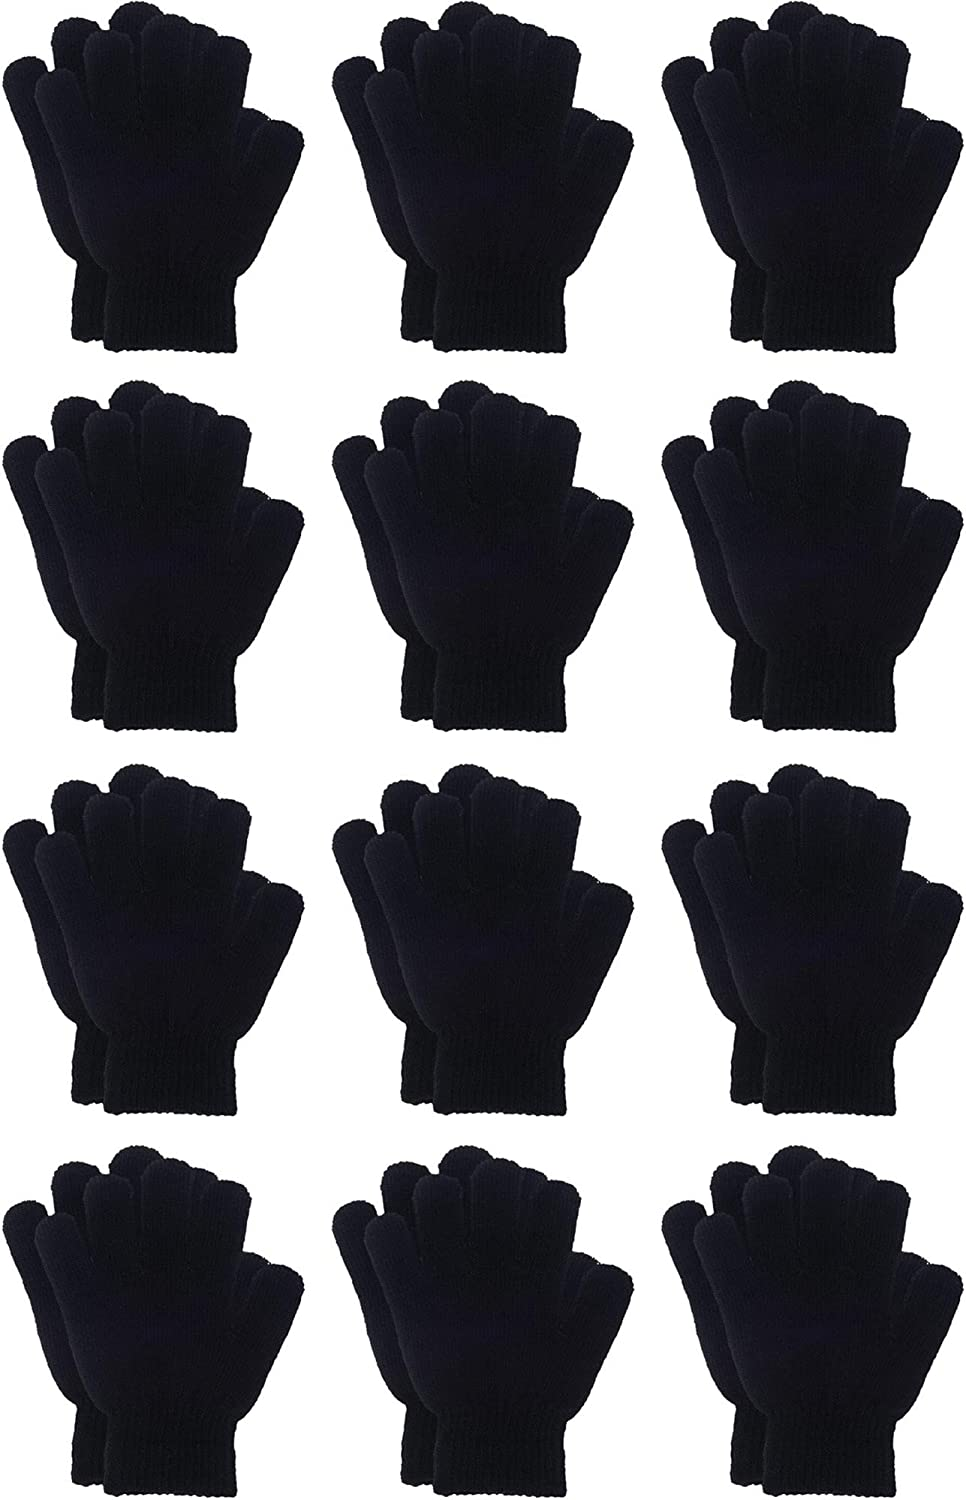 Sumind 12 Pairs Winter Knitted Magic Stretch Gloves Anti-slip Knit Warm Gloves for Children